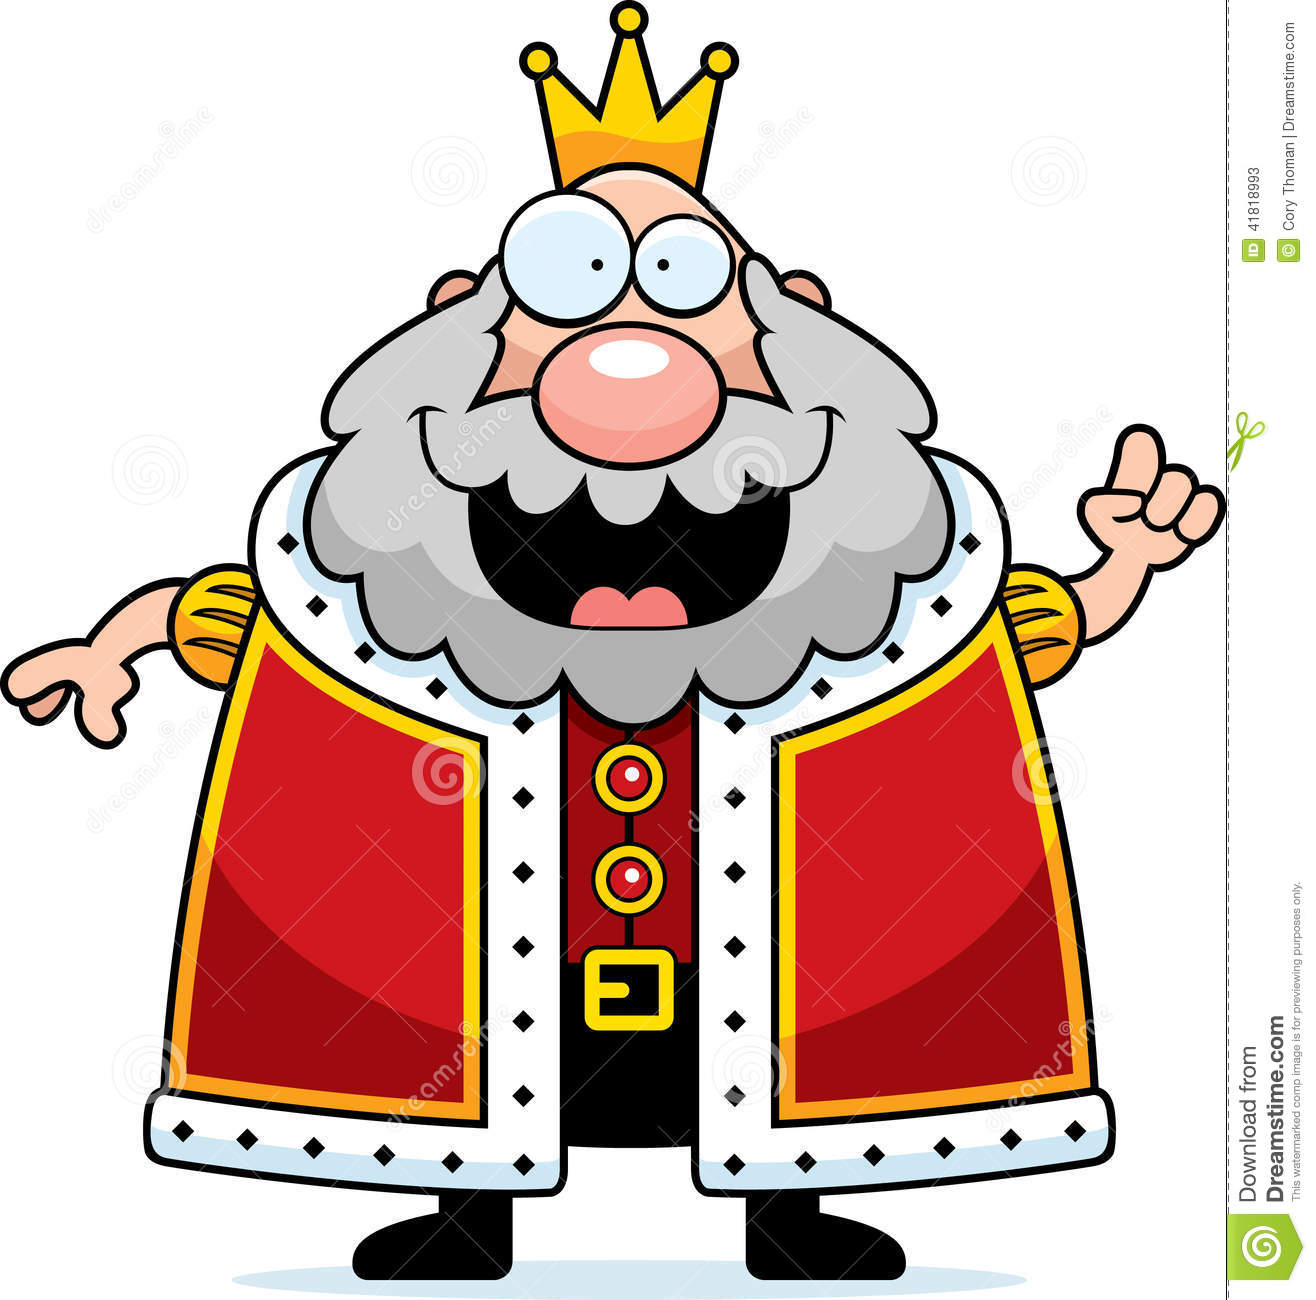 clipart king-clipart king-9